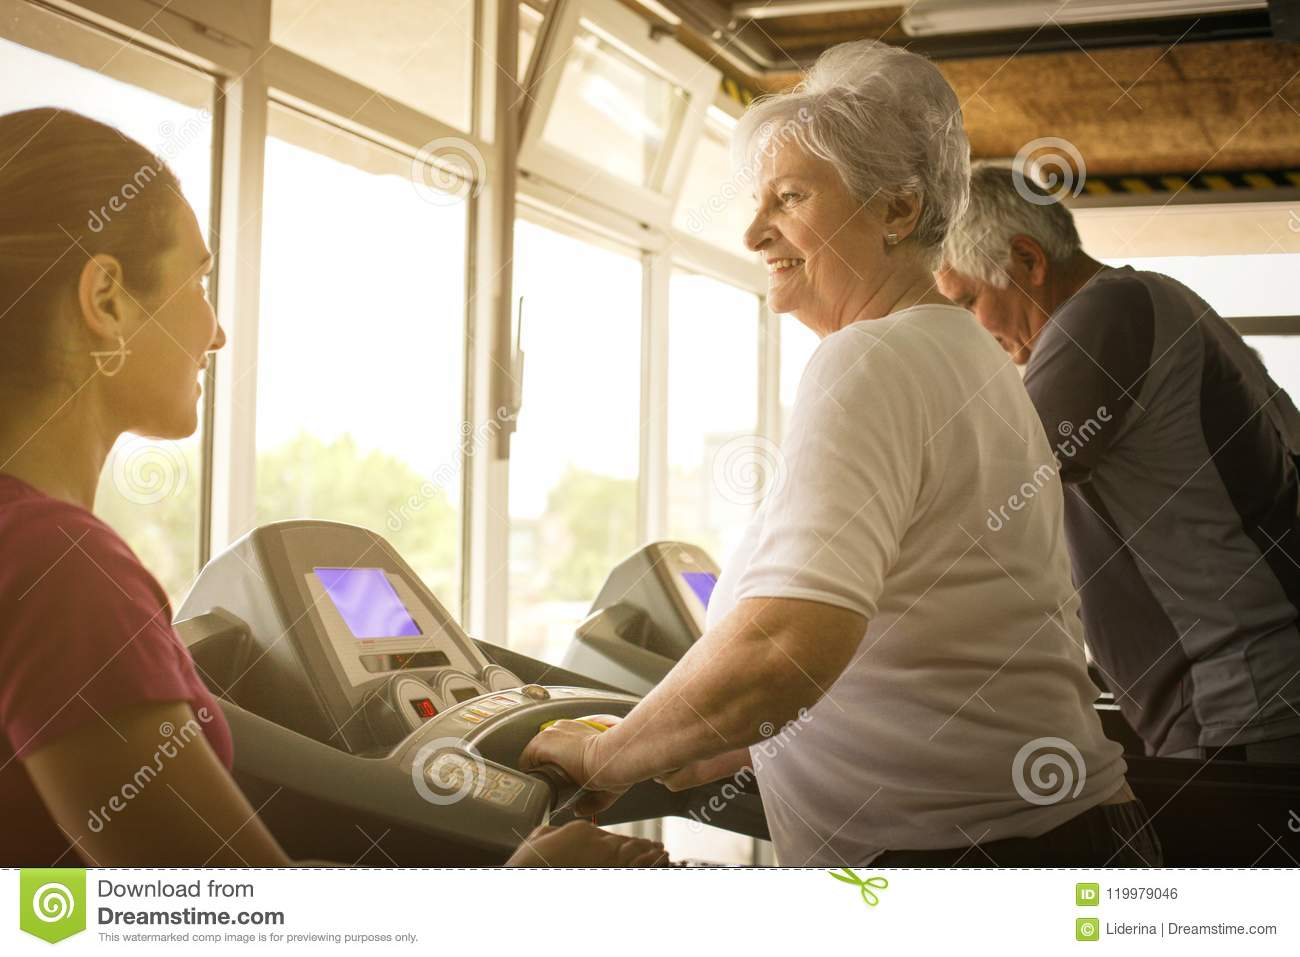 Personal trainer exercise helps elderly couple.